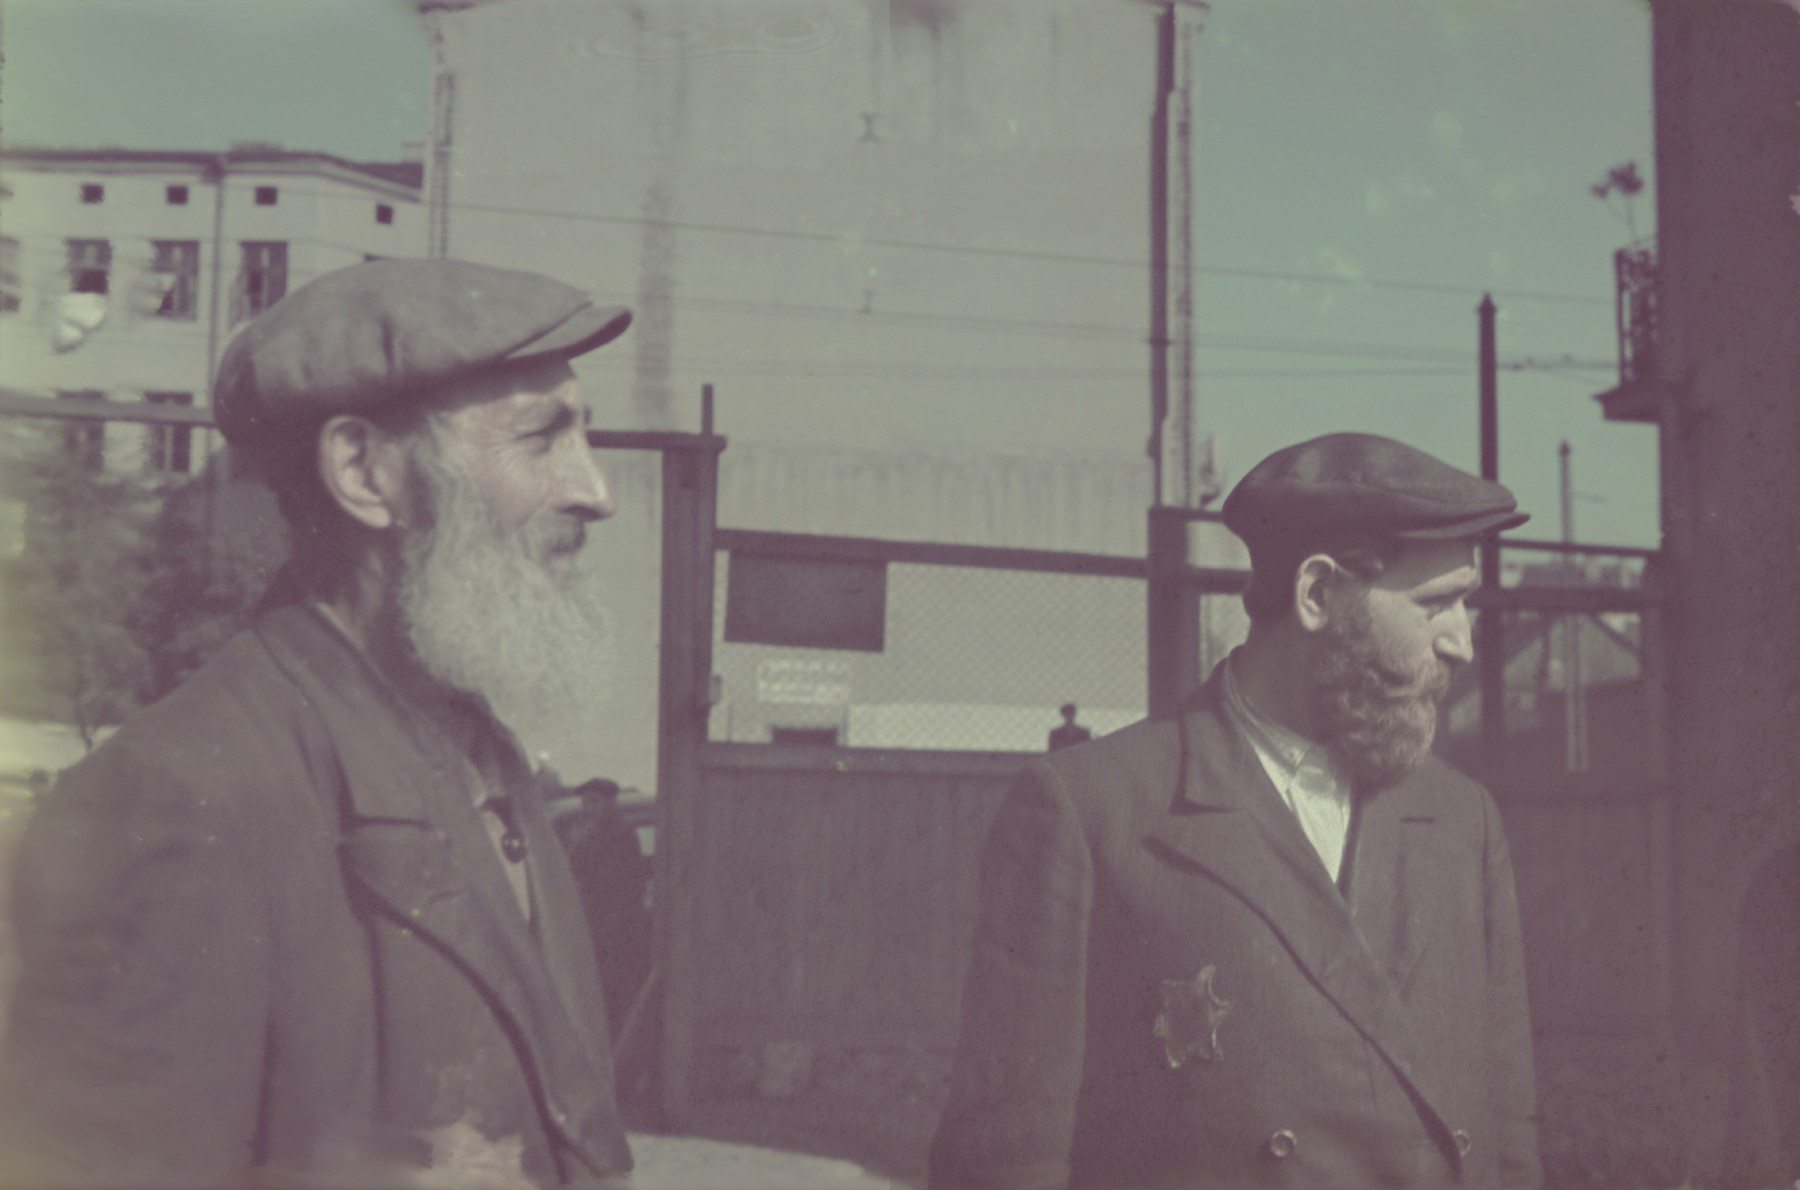 Close-up portrait of two bearded men in the Lodz ghetto.